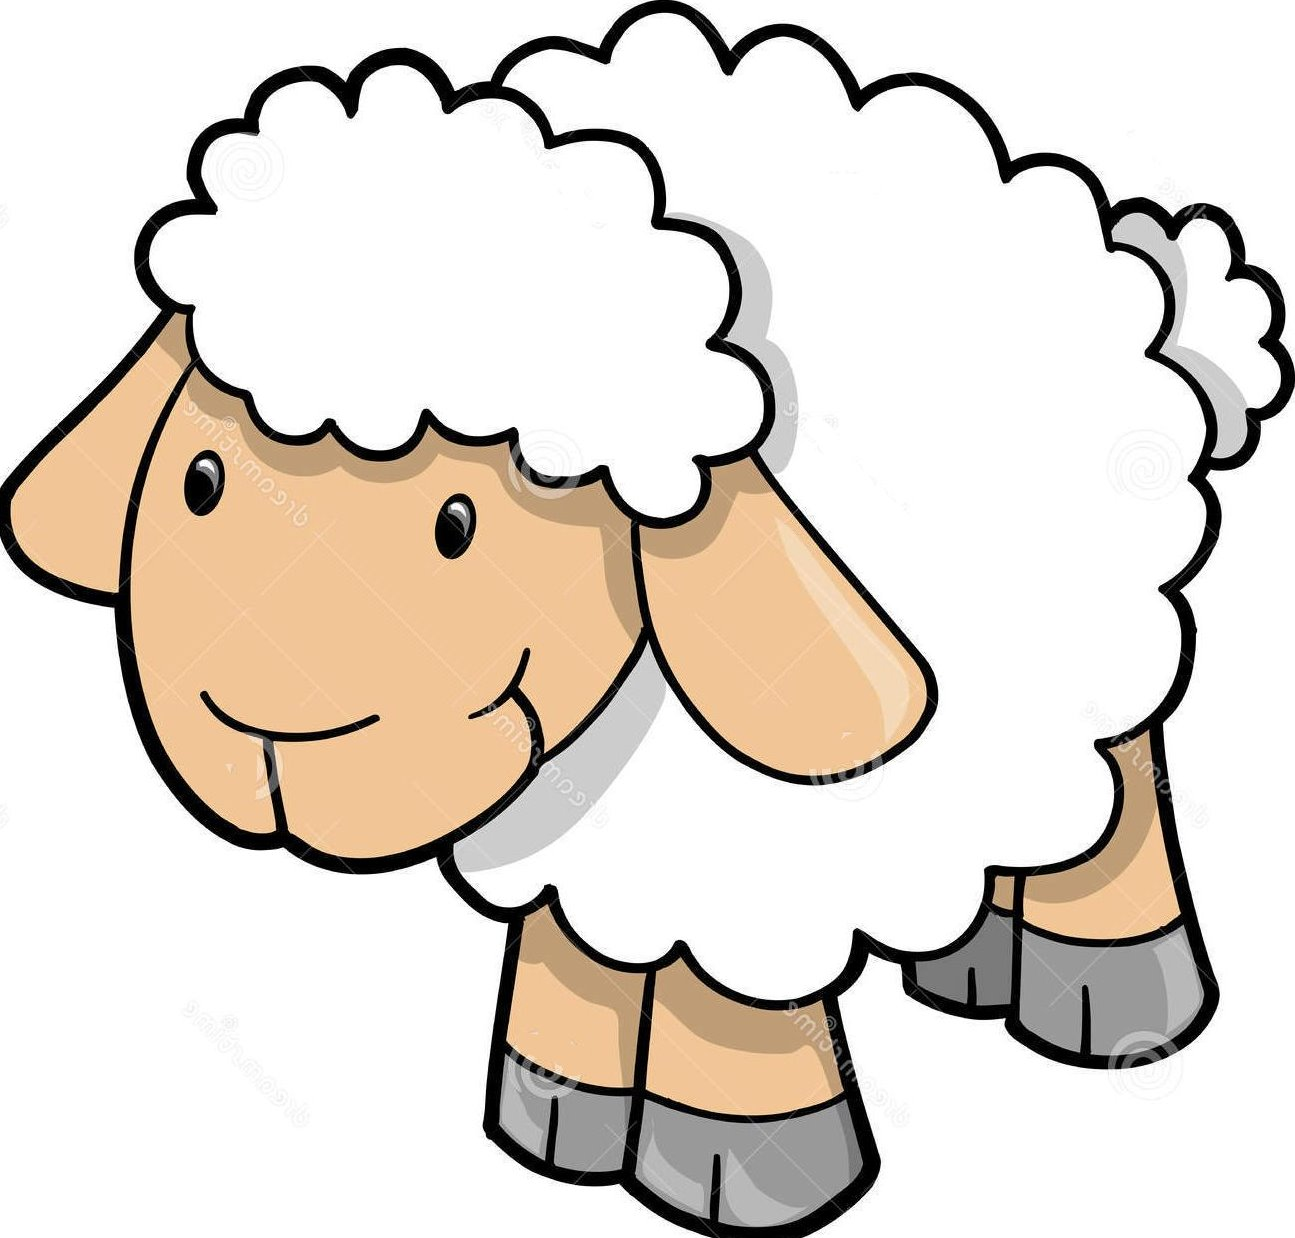 Fleecehaven Sheep